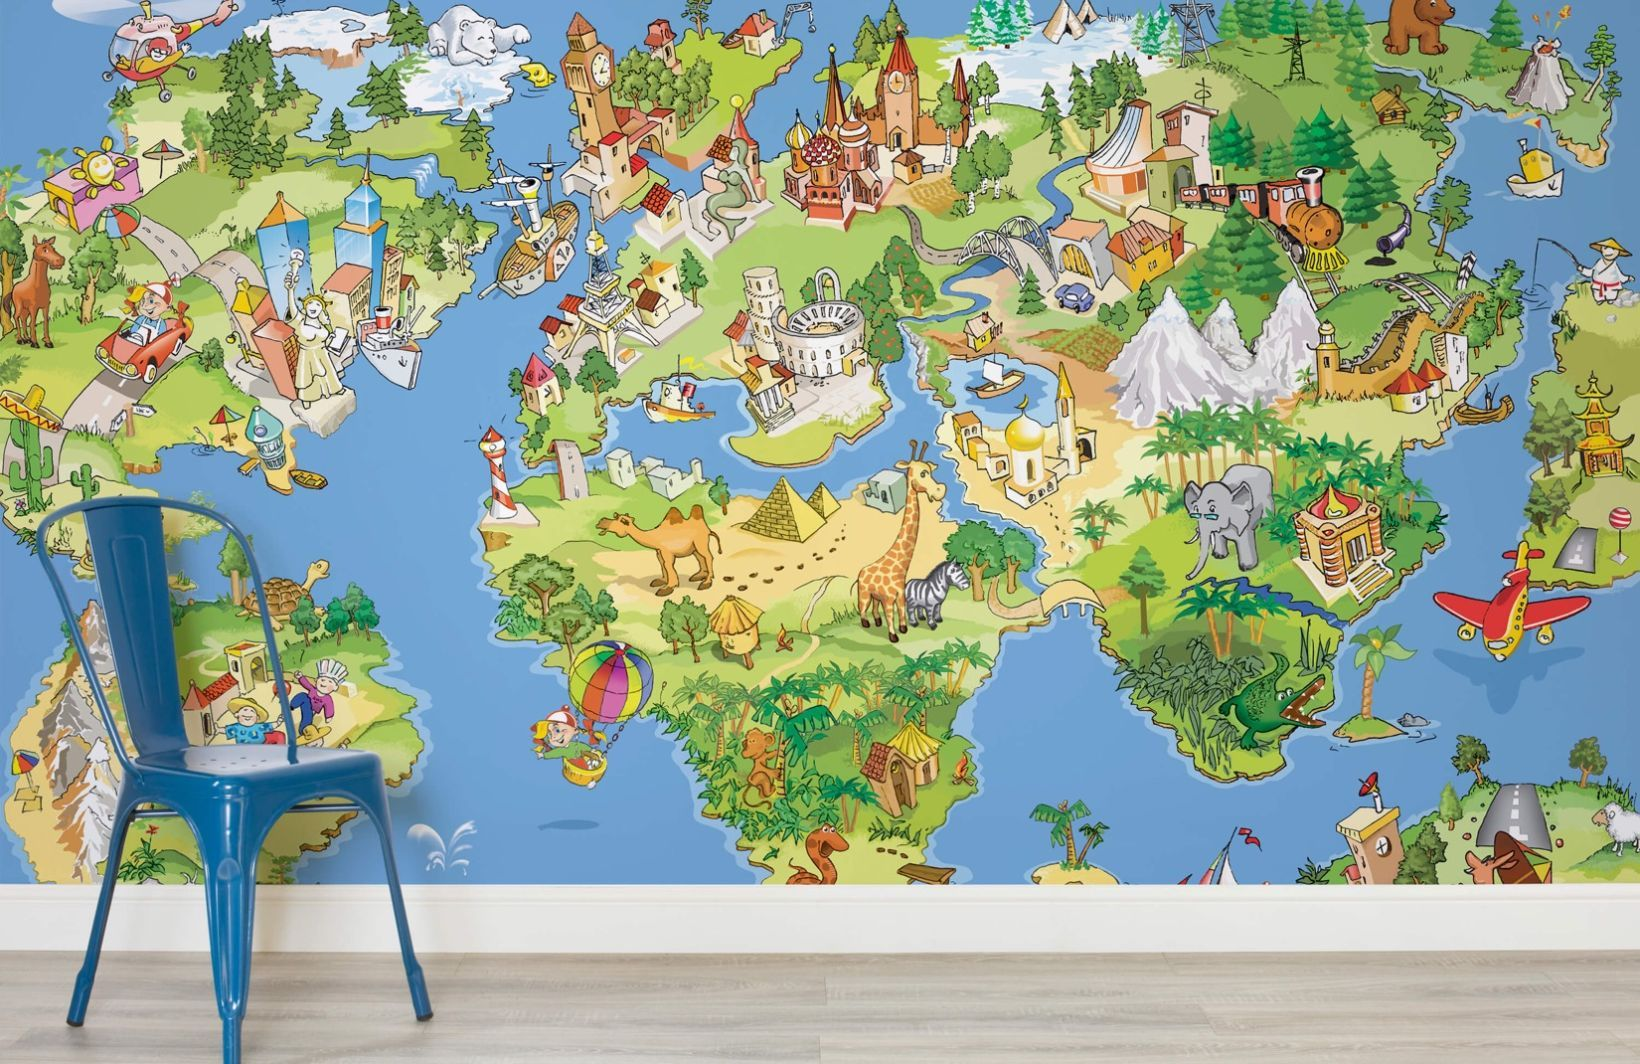 Animal map wallpaper wall mural muralswallpaper wallpaper animal map wallpaper wall mural muralswallpaper gumiabroncs Image collections